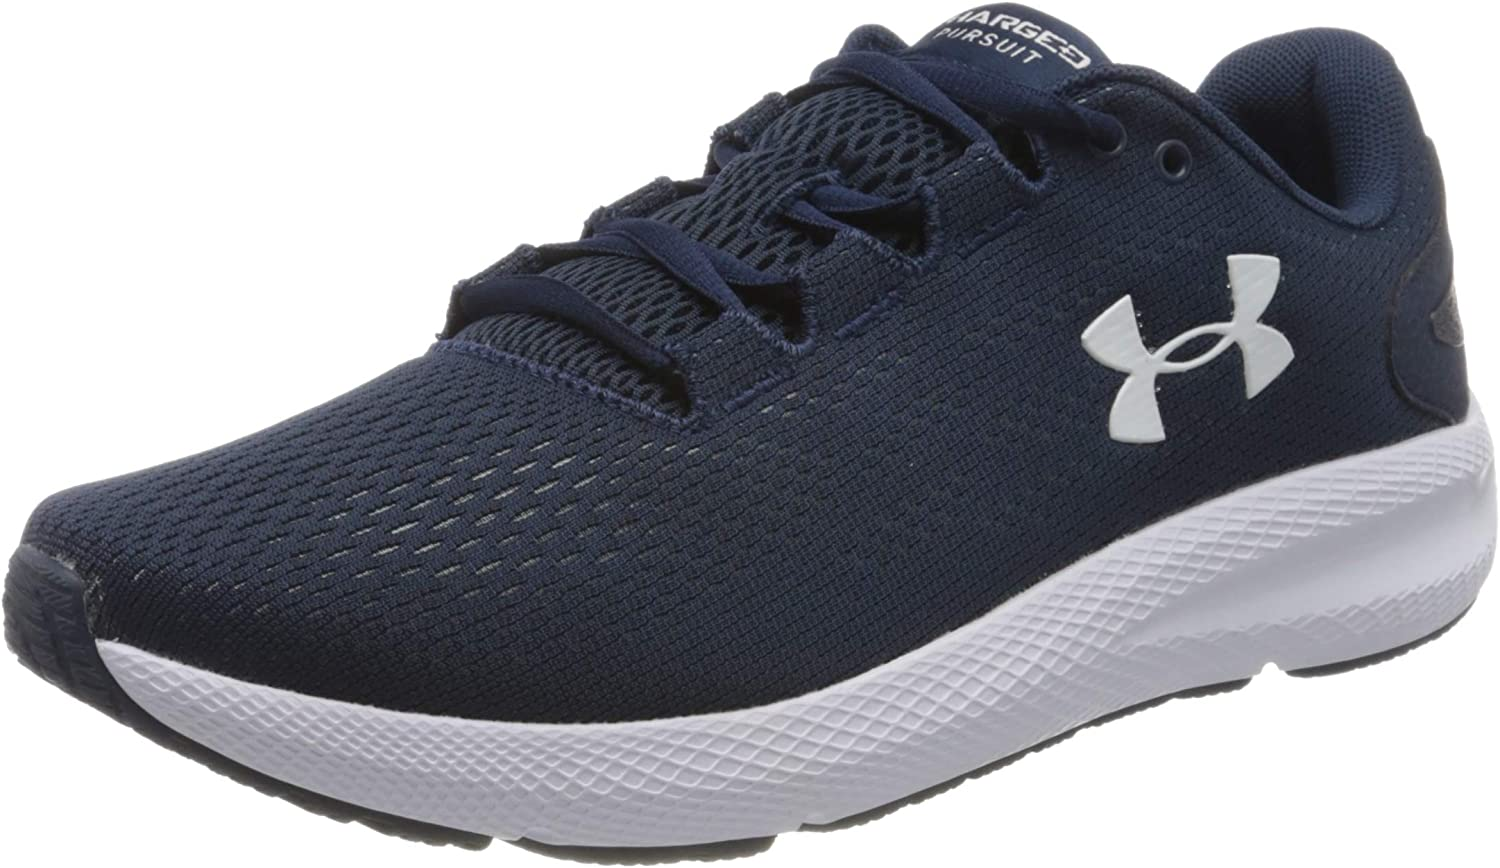 Under Armour Men's Charged Pursuit Shoe Running Dealing full price reduction 2 Direct stock discount